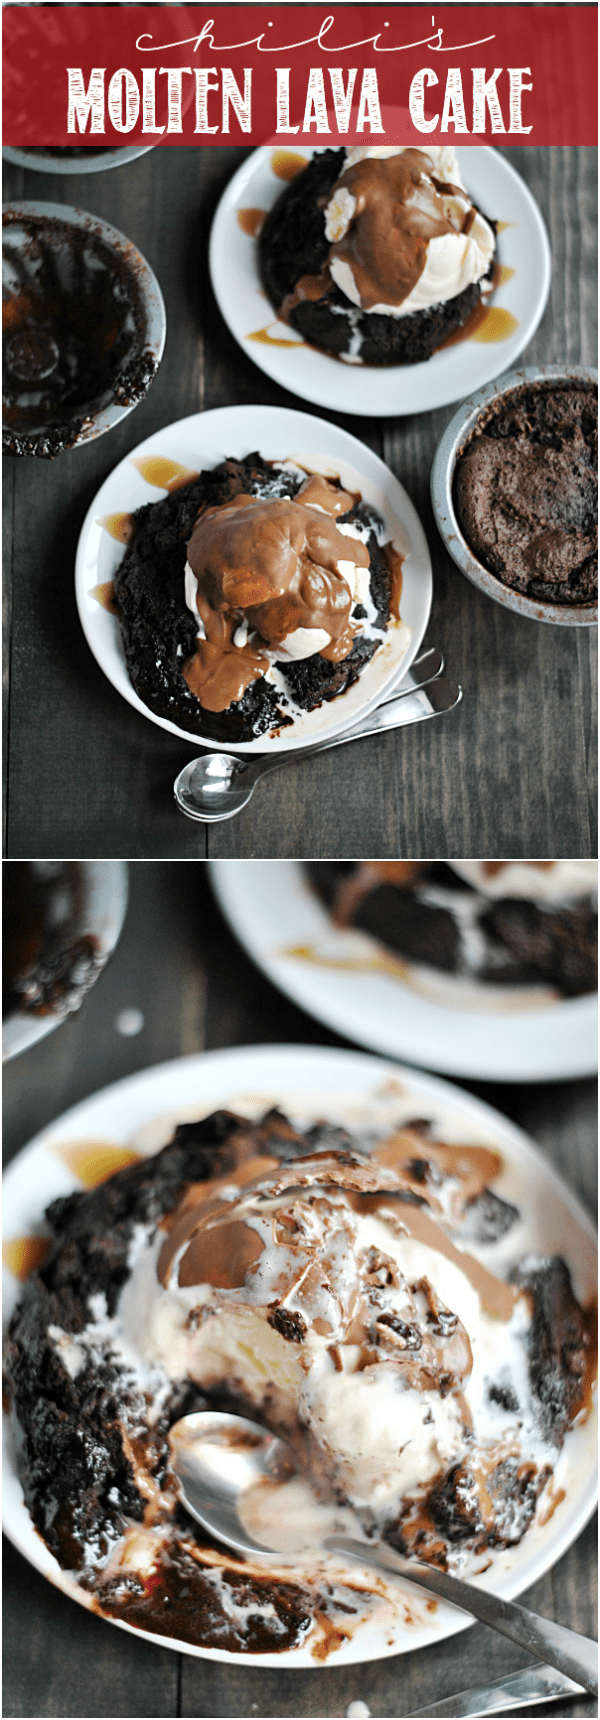 Simple Molten Lava Cake Recipe